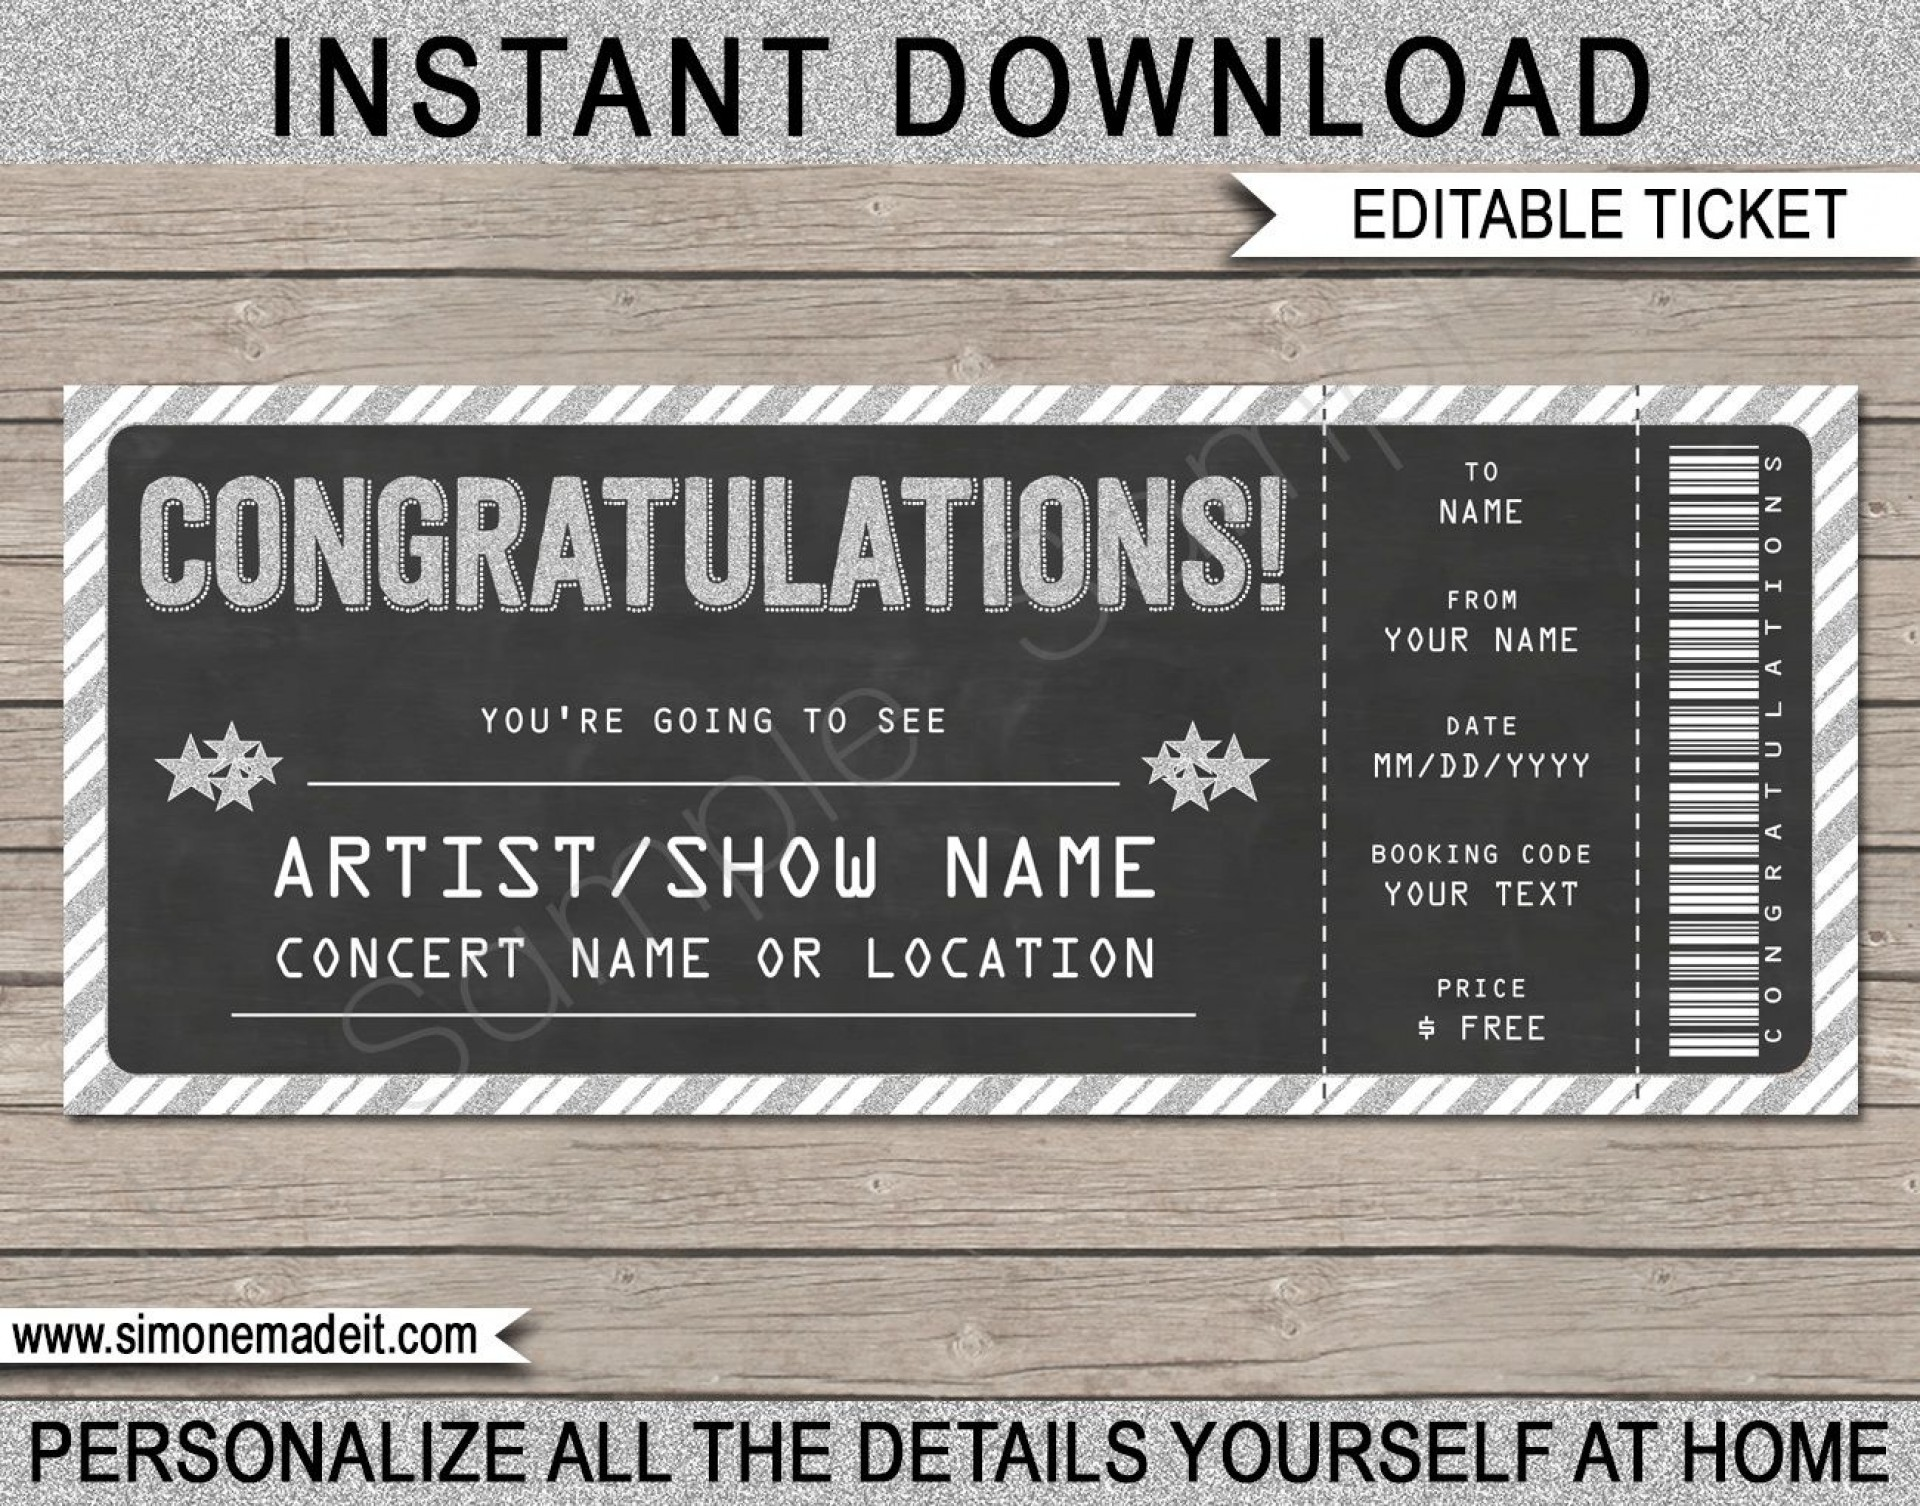 005 Formidable Concert Ticket Template Free Printable Photo  Gift1920